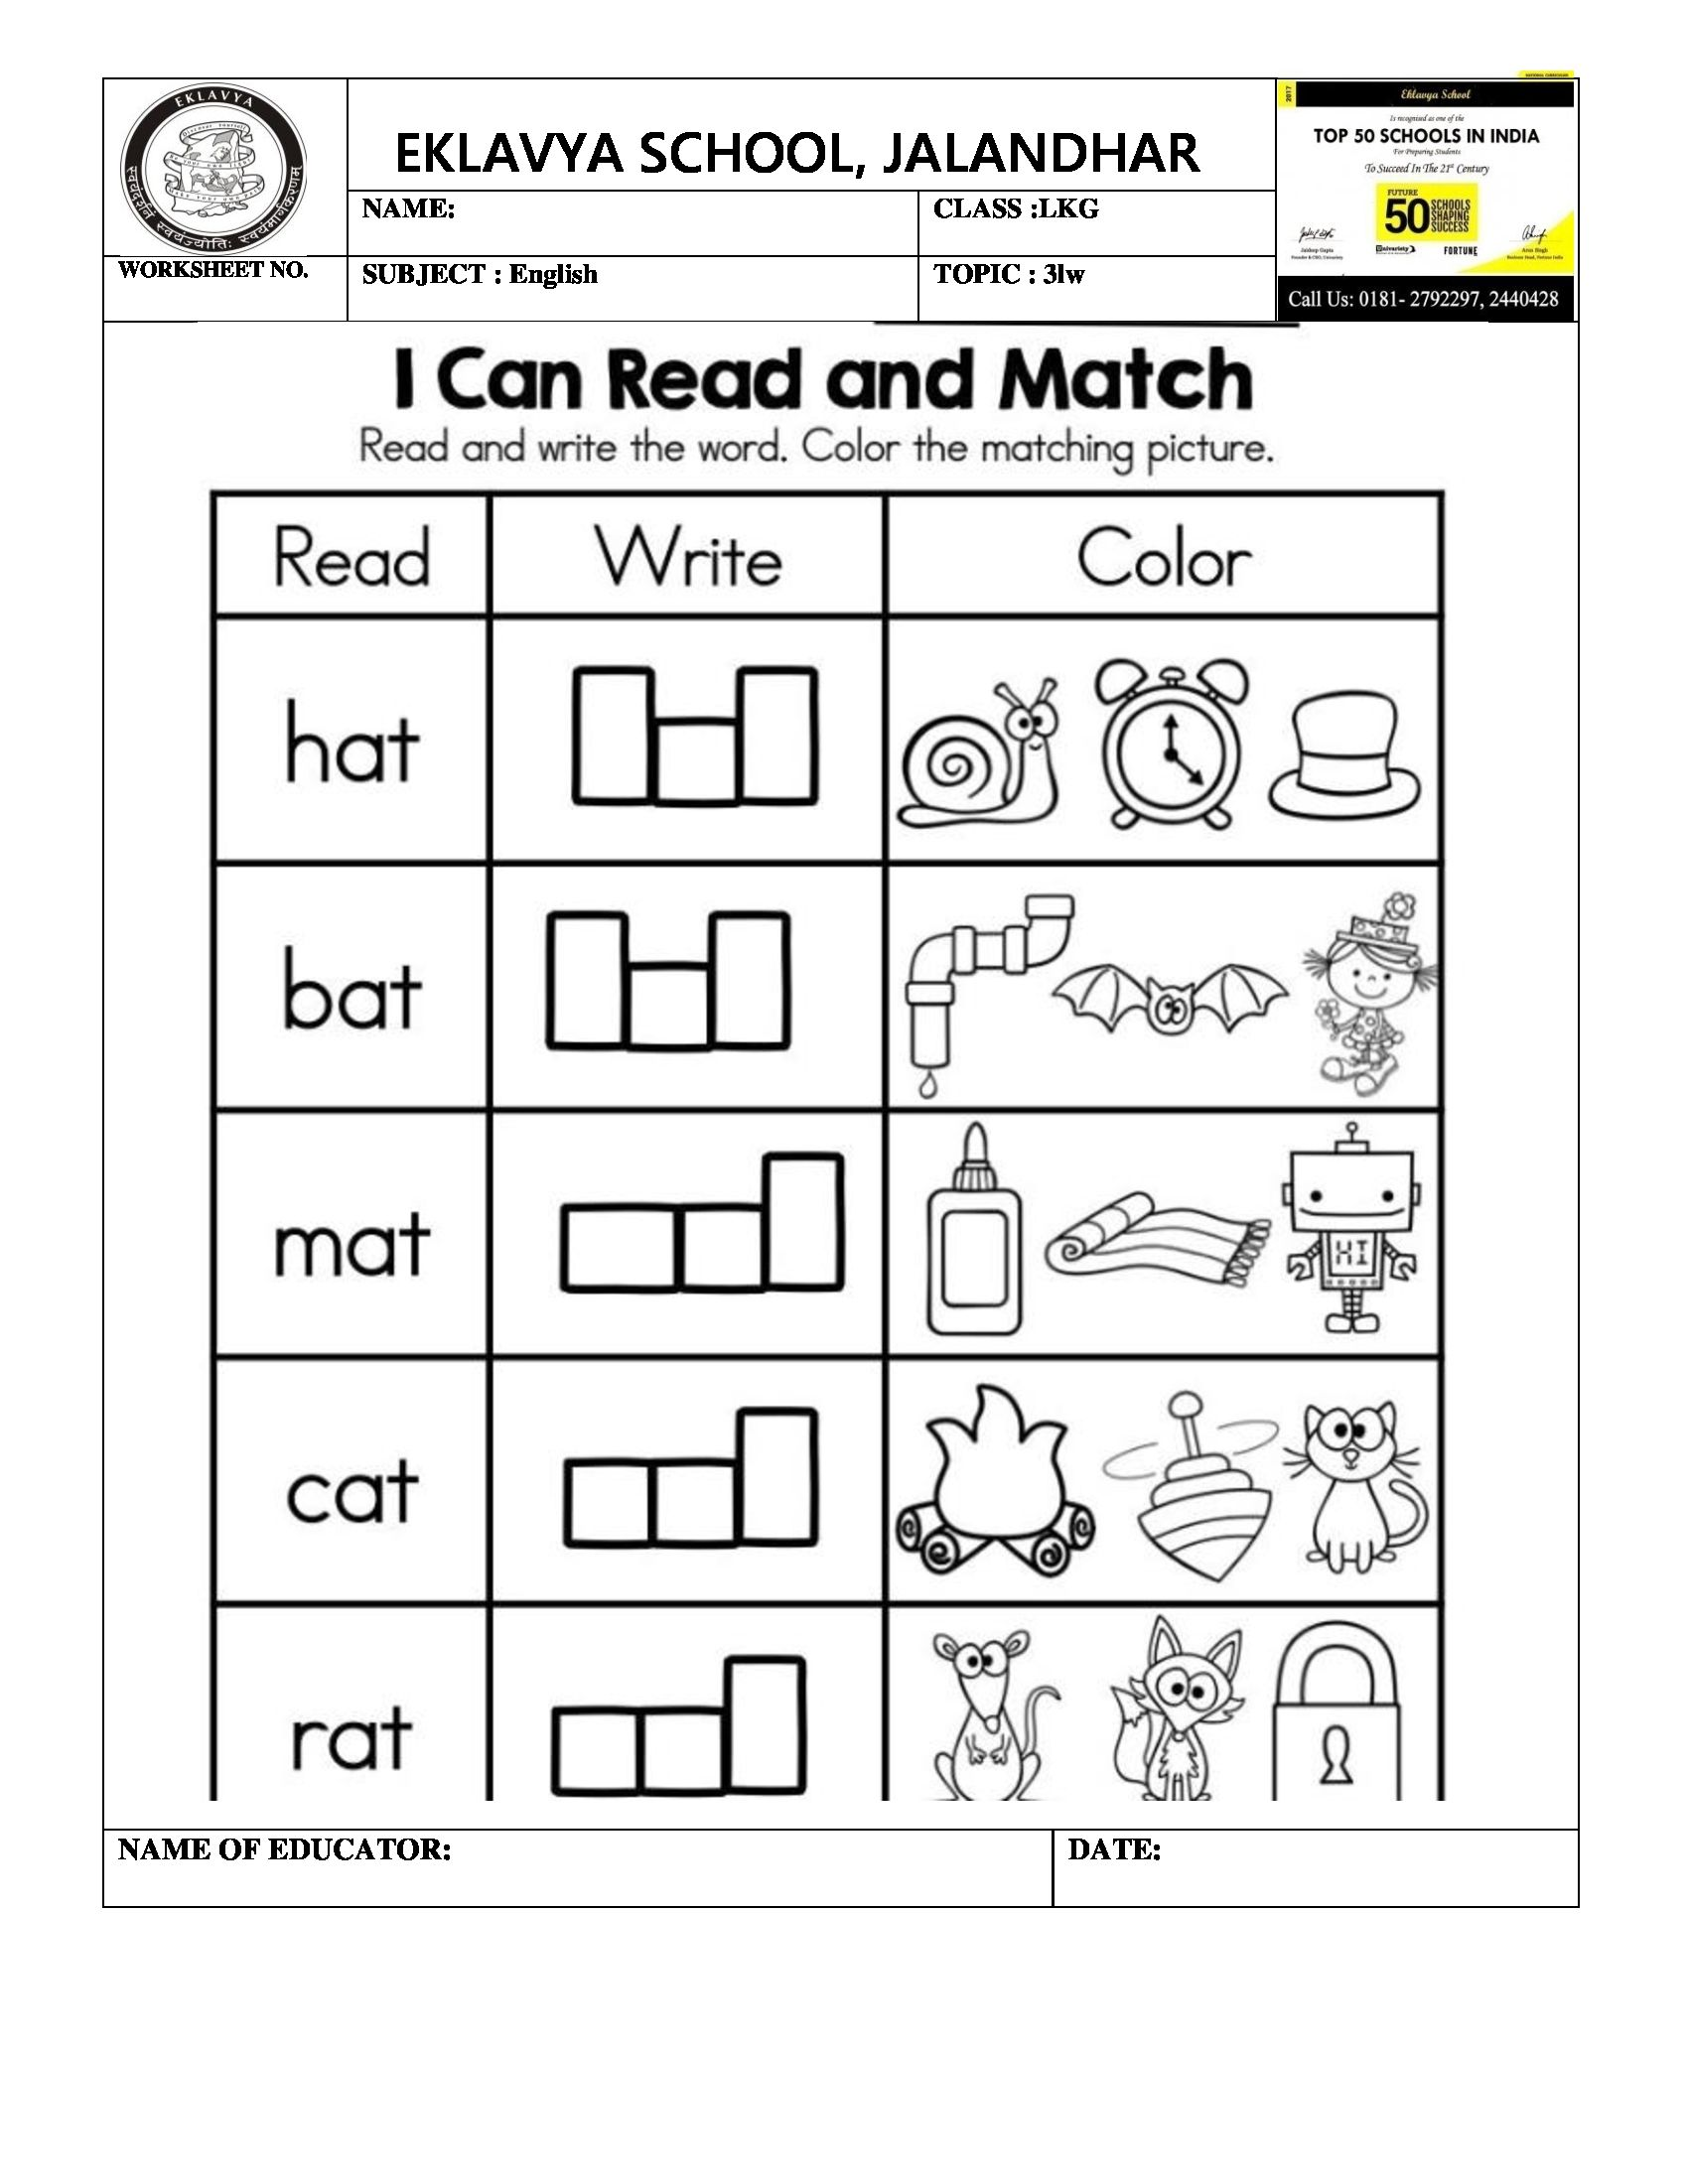 Worksheet On Three Letter Words With Images